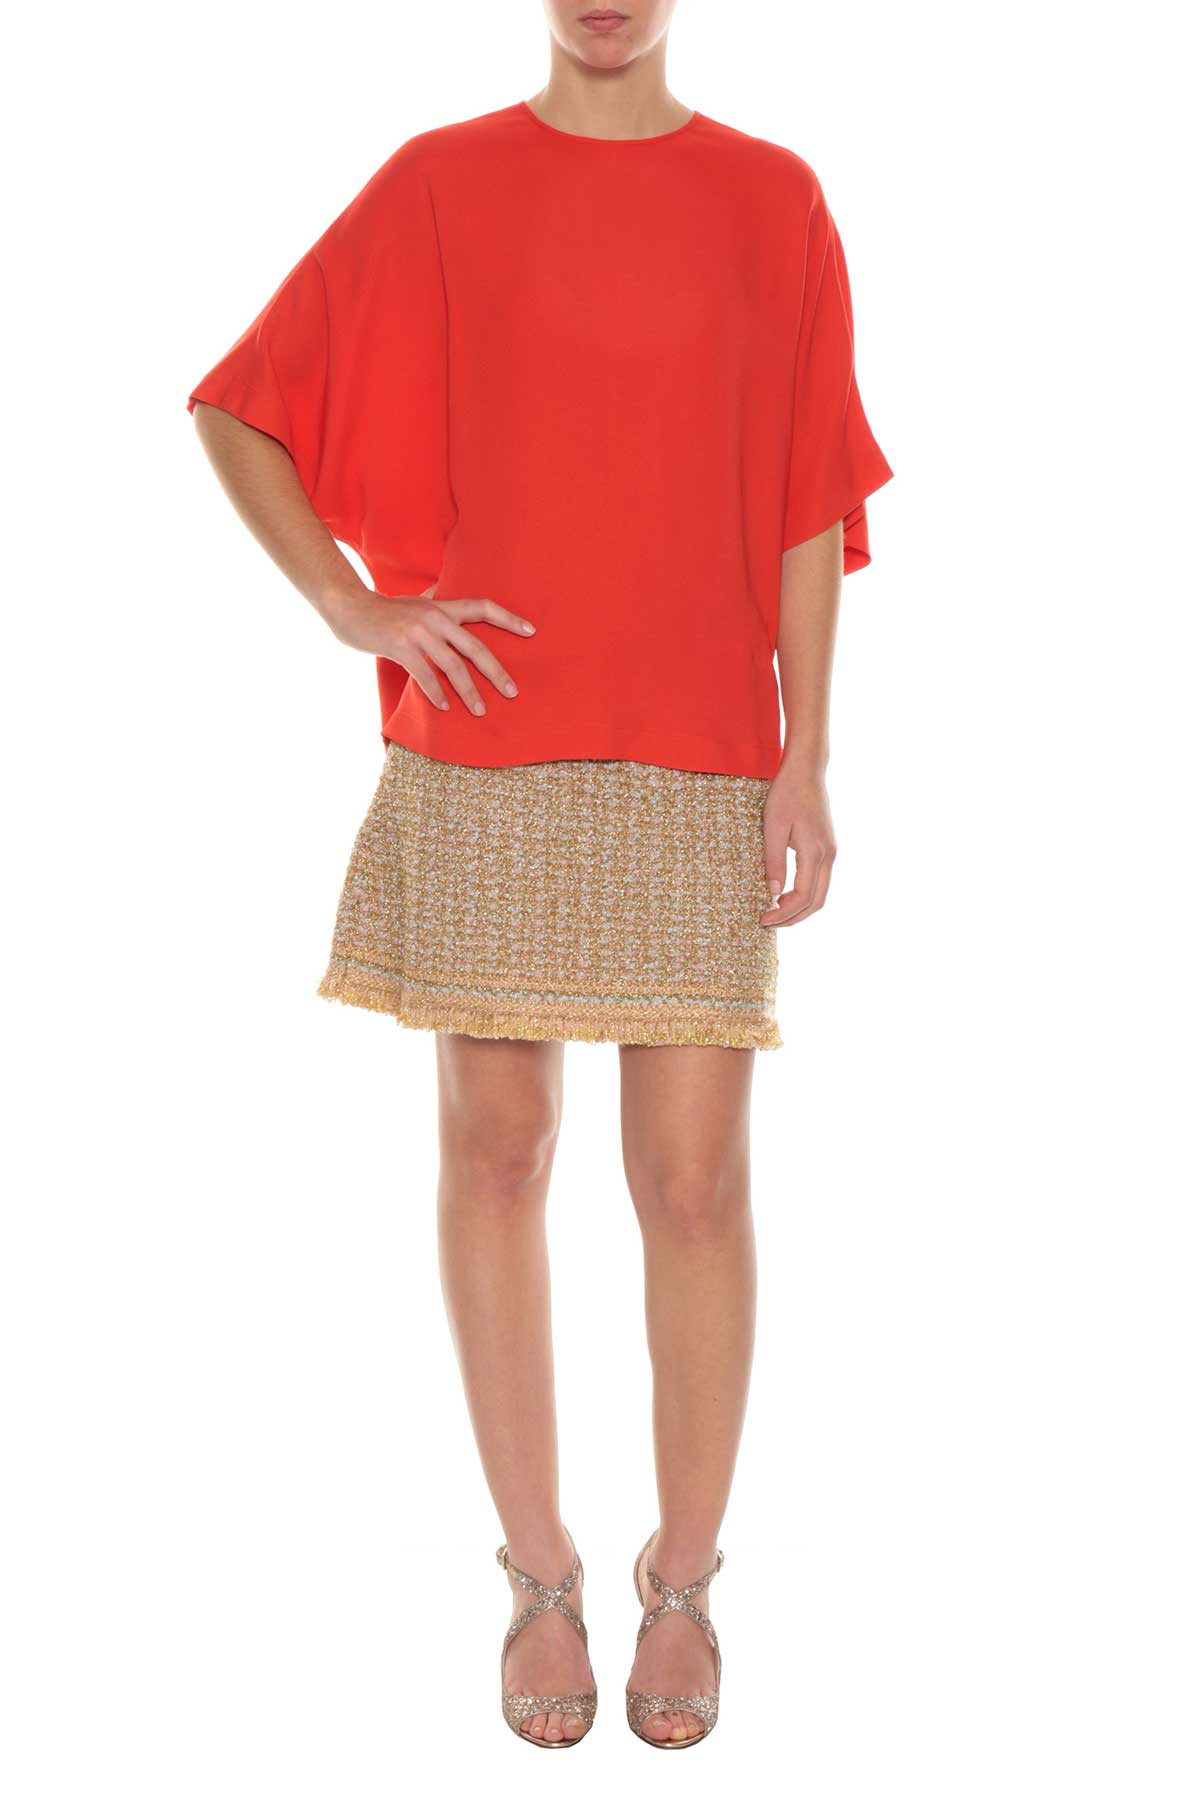 M Missoni M Missoni Blouse With Short Sleeves